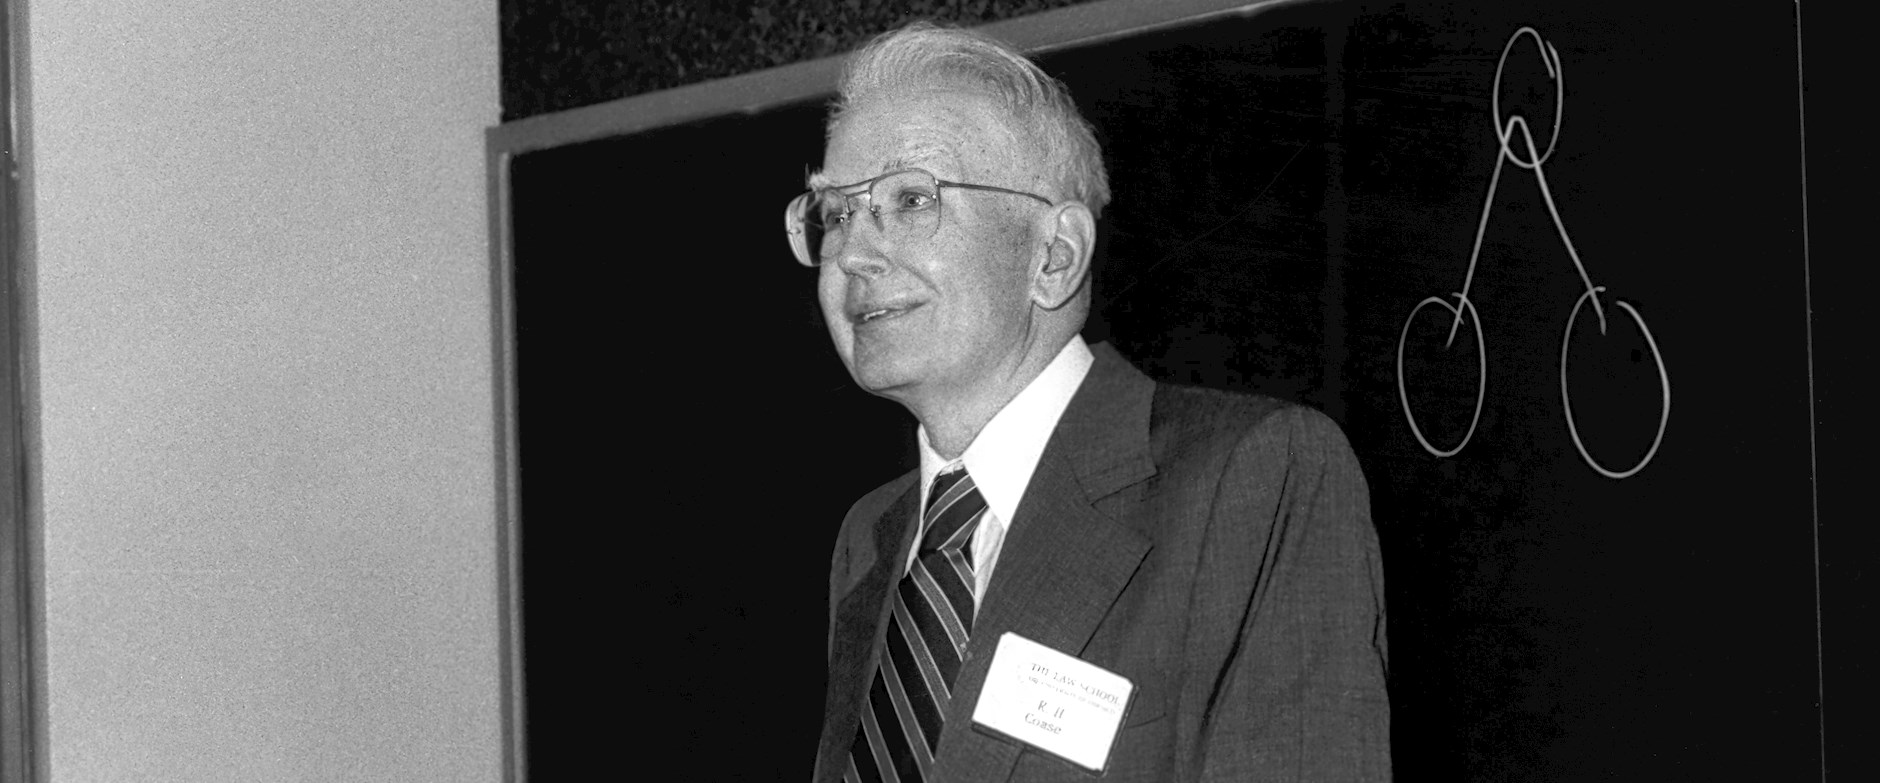 Ronald Coase standing in front of a blackboard